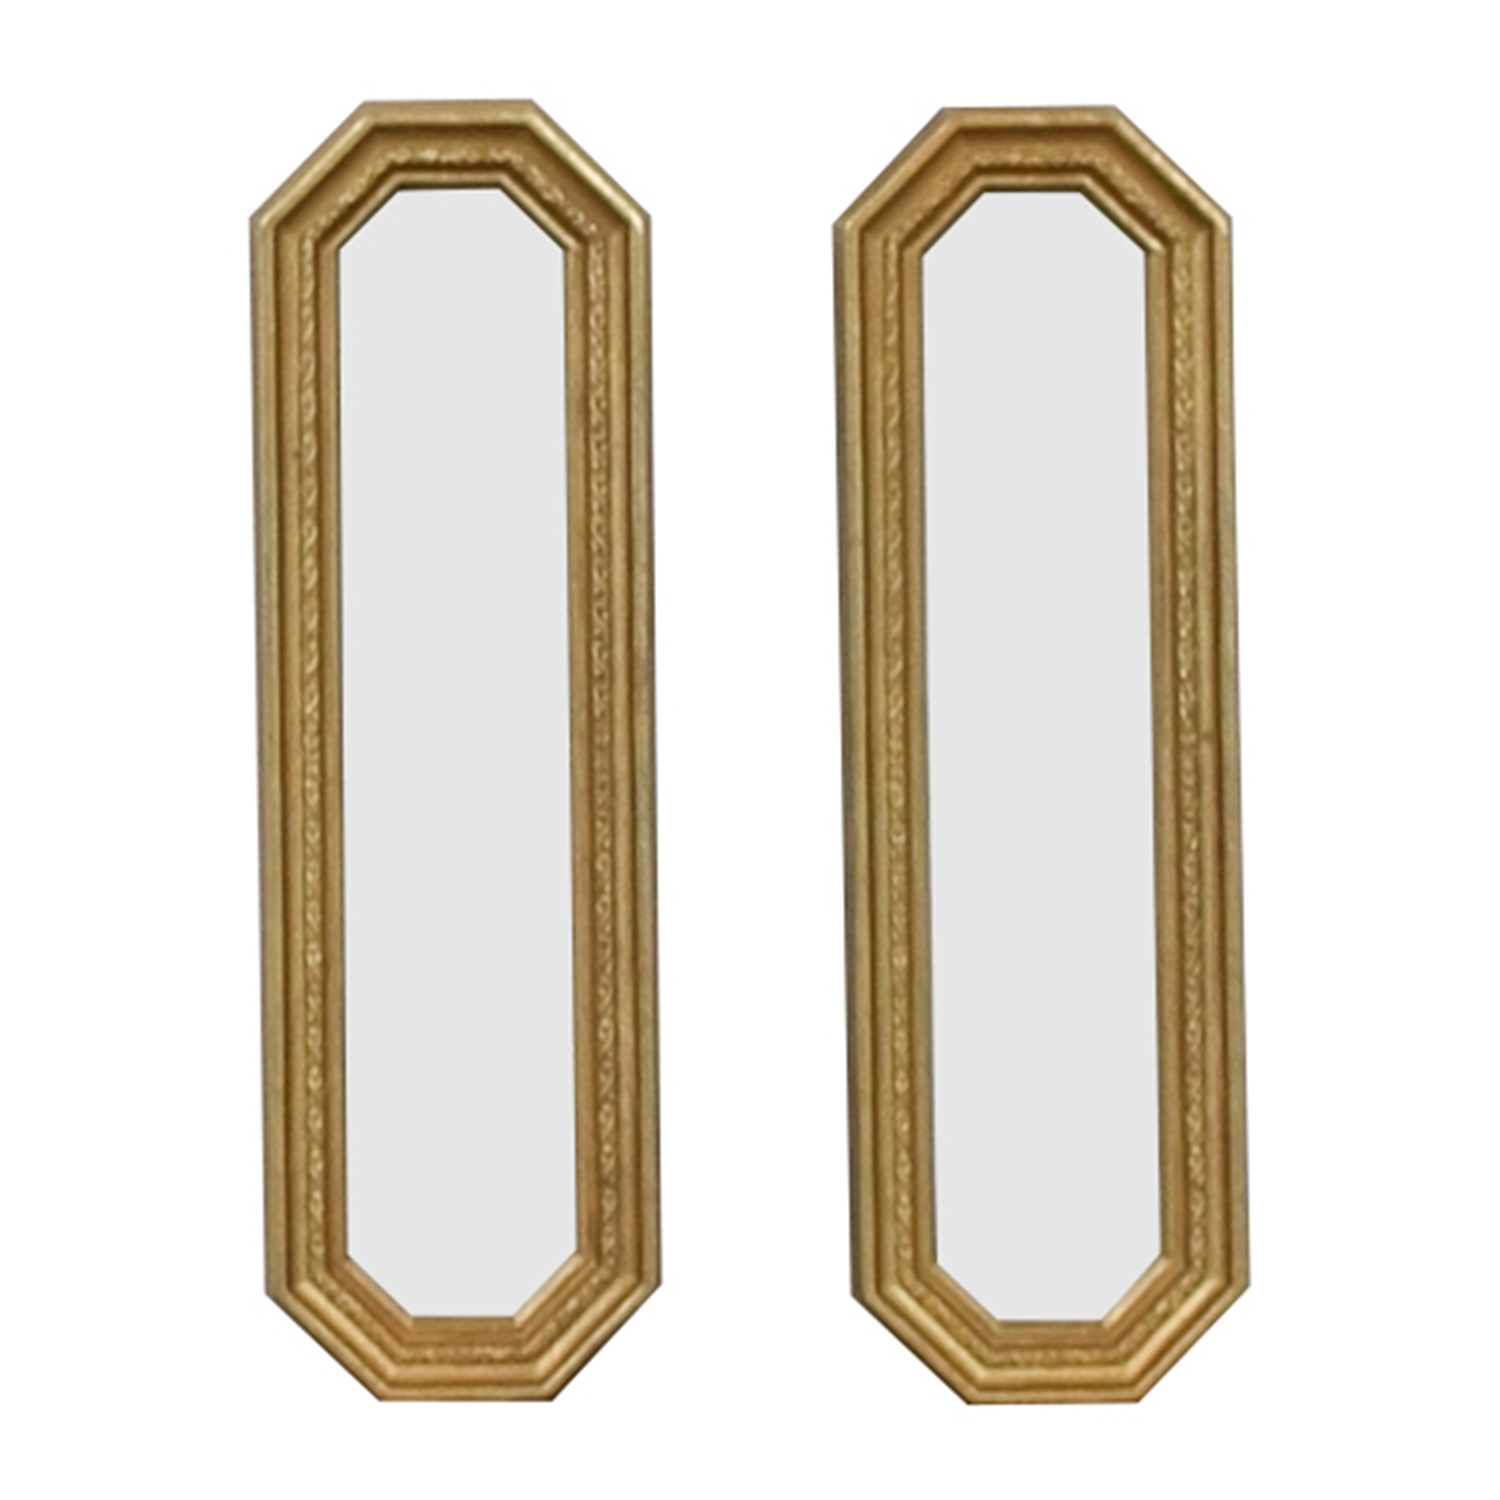 Gold Frame Oblong Mirrors / Mirrors